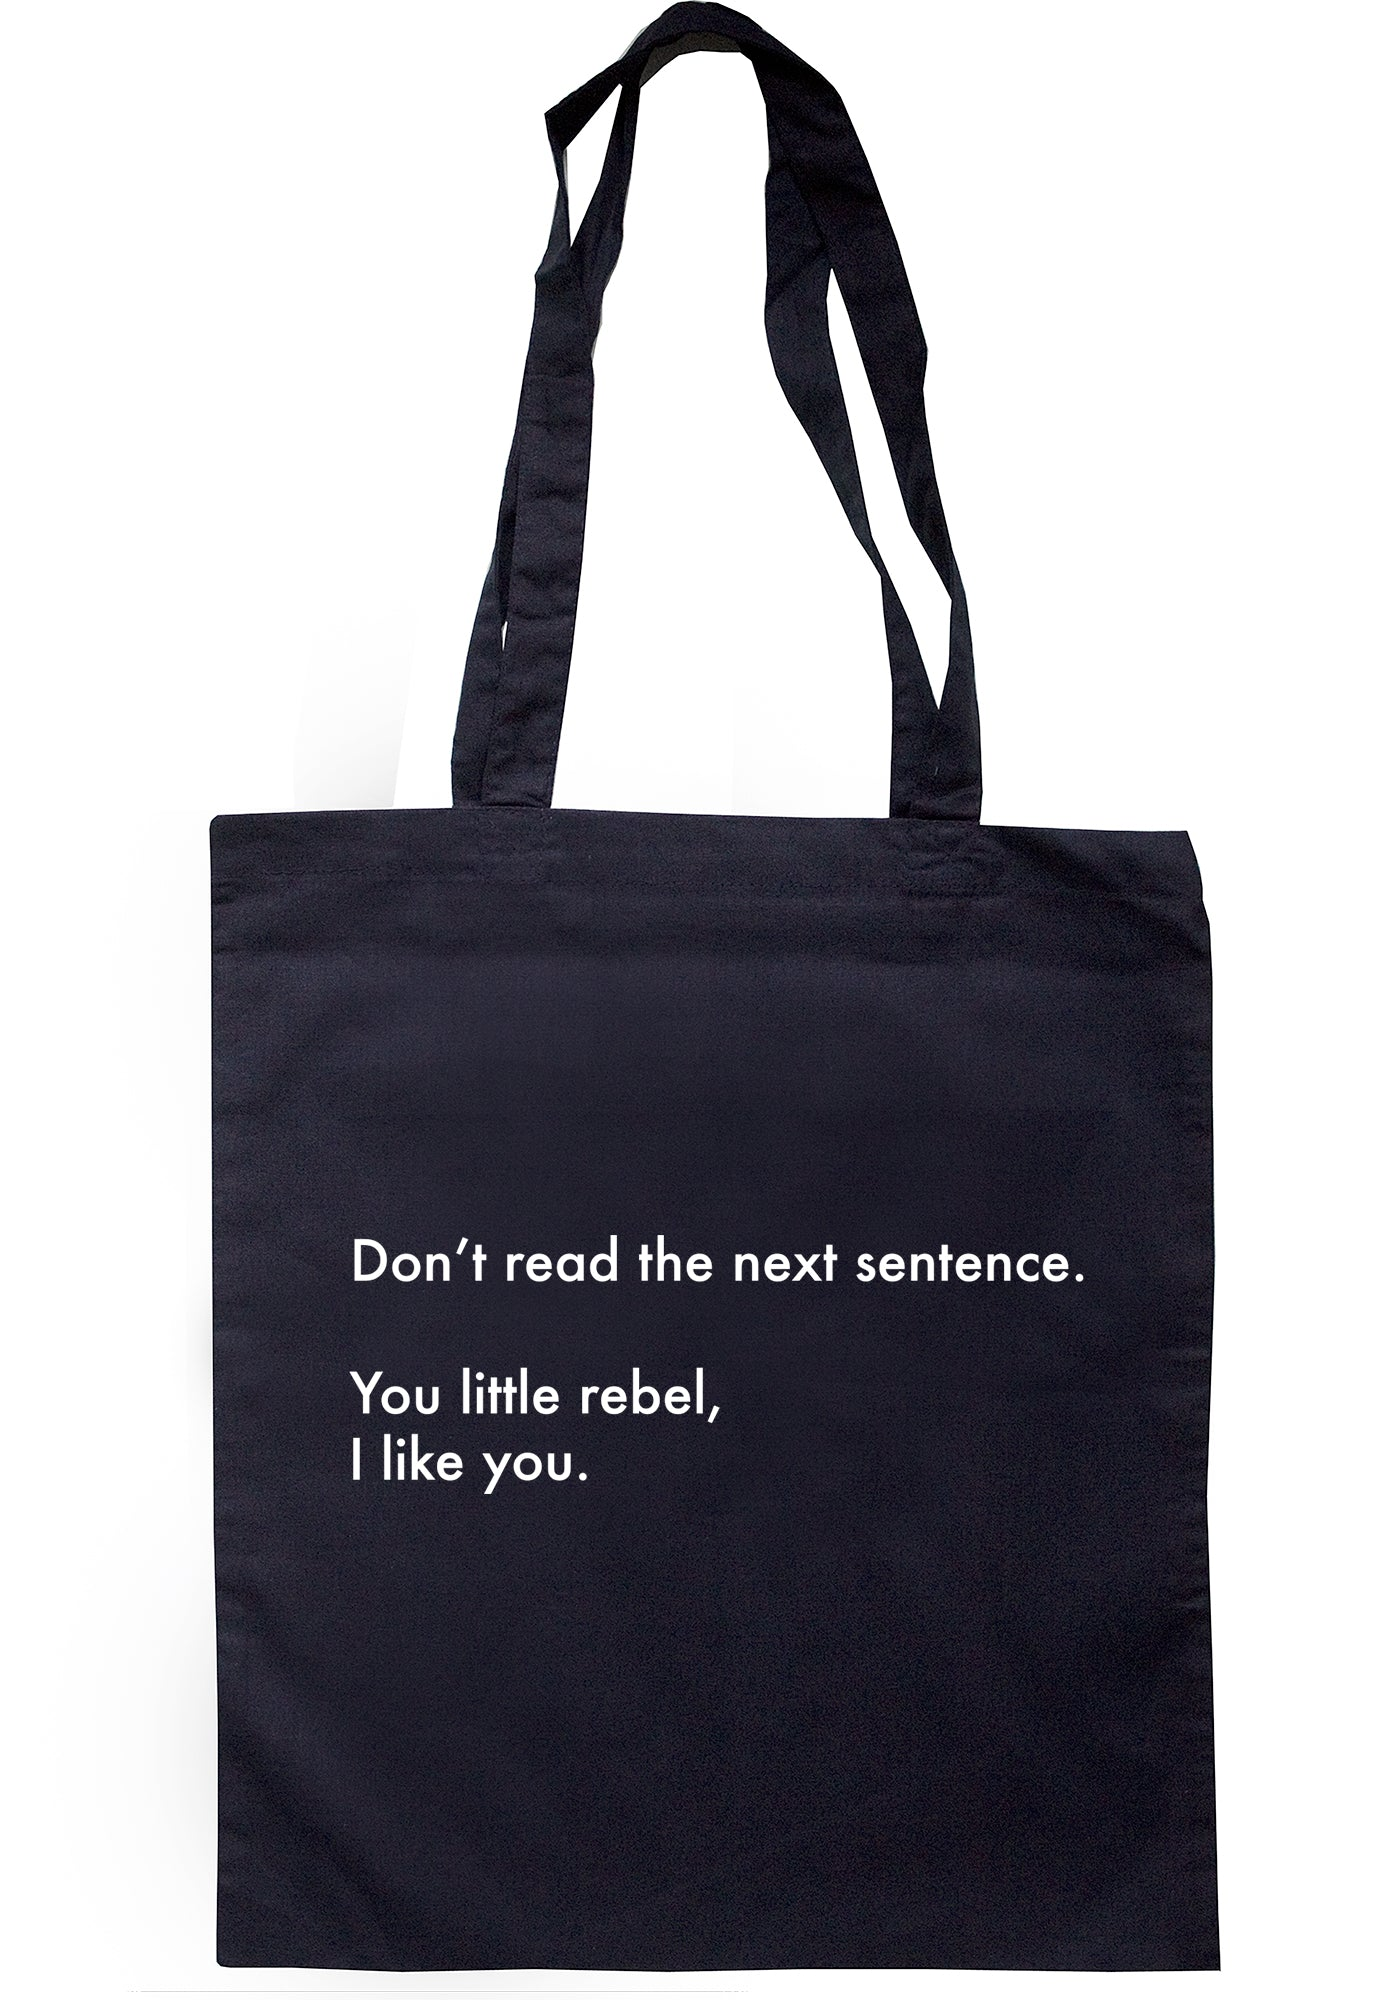 Don't Read The Next Sentence Tote Bag S0898 - Illustrated Identity Ltd.